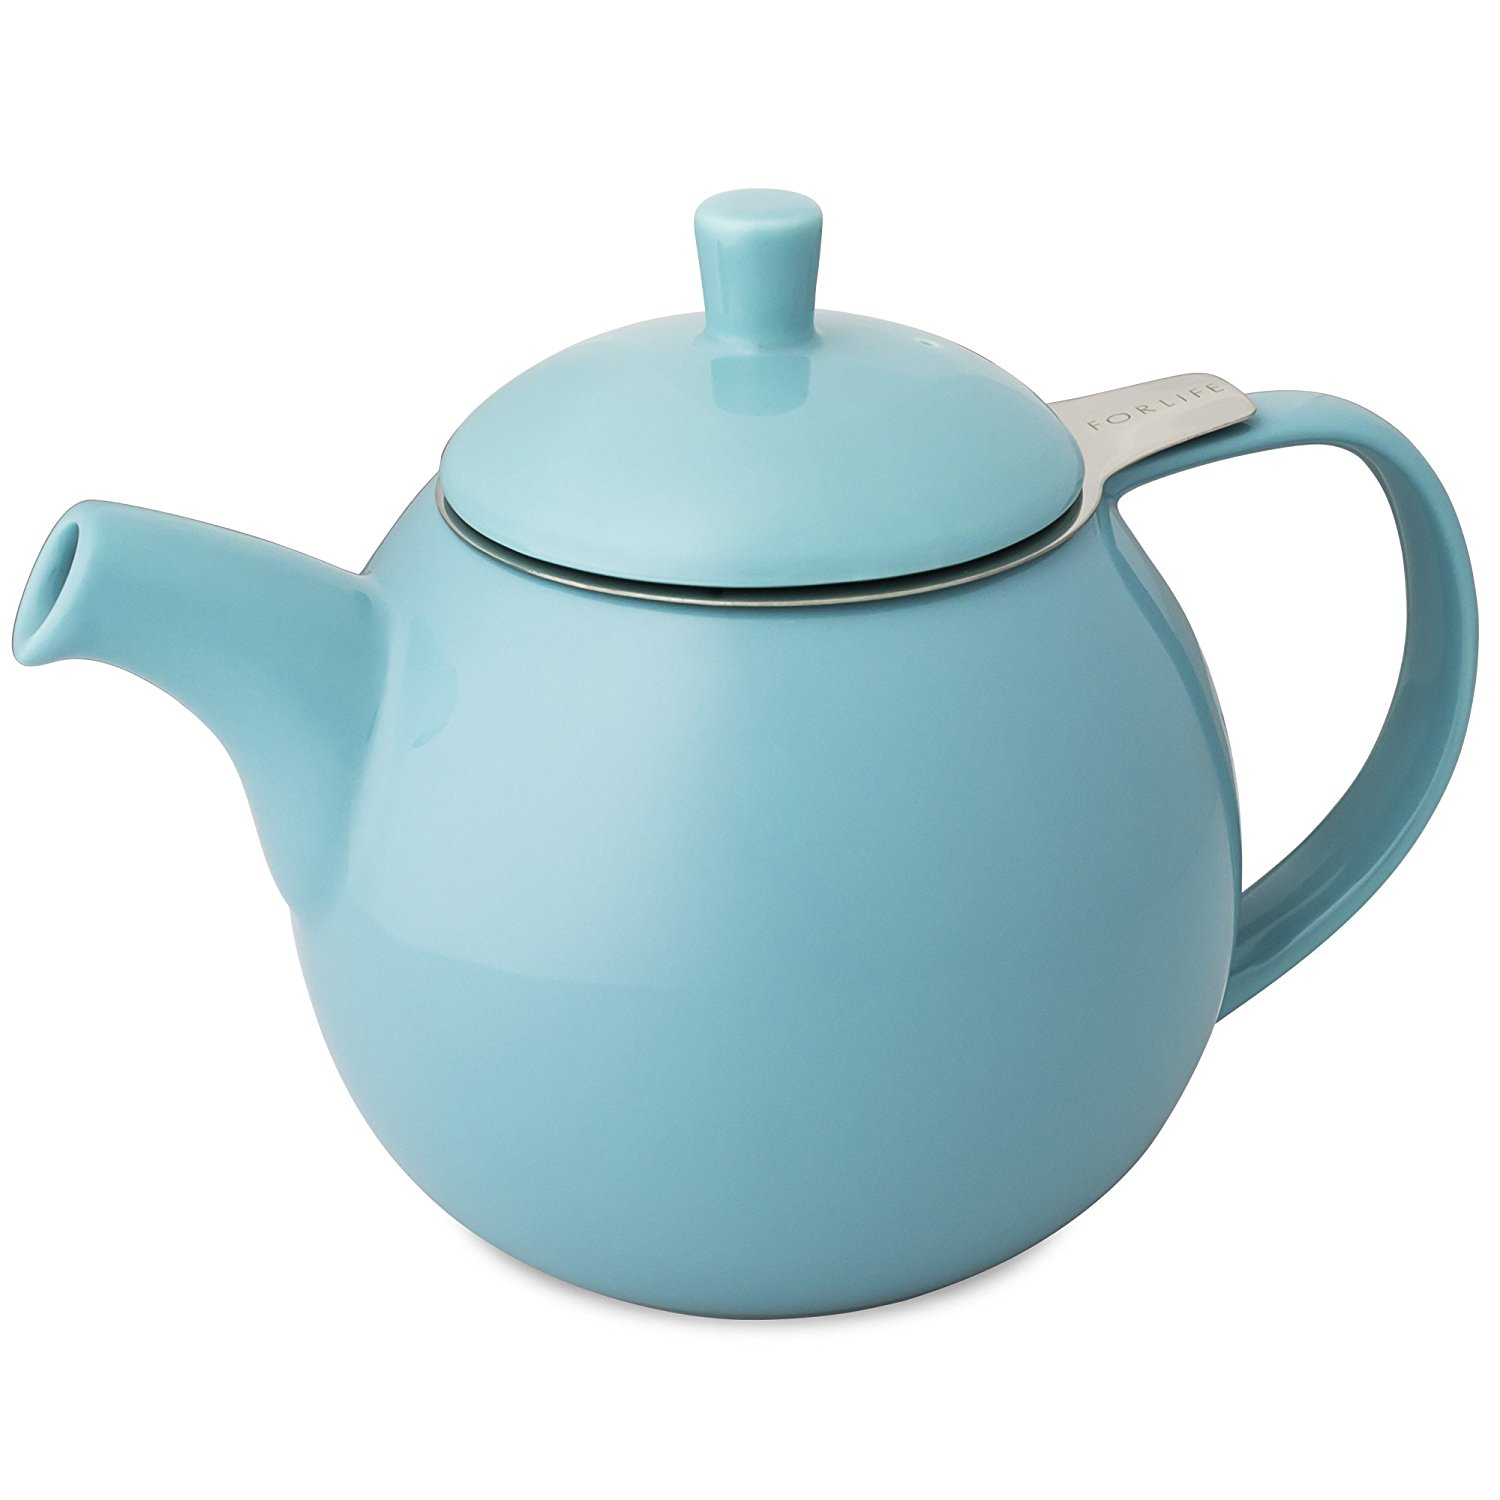 1500x1500 Forlife Curve Teapot With Infuser, 24 Ounce